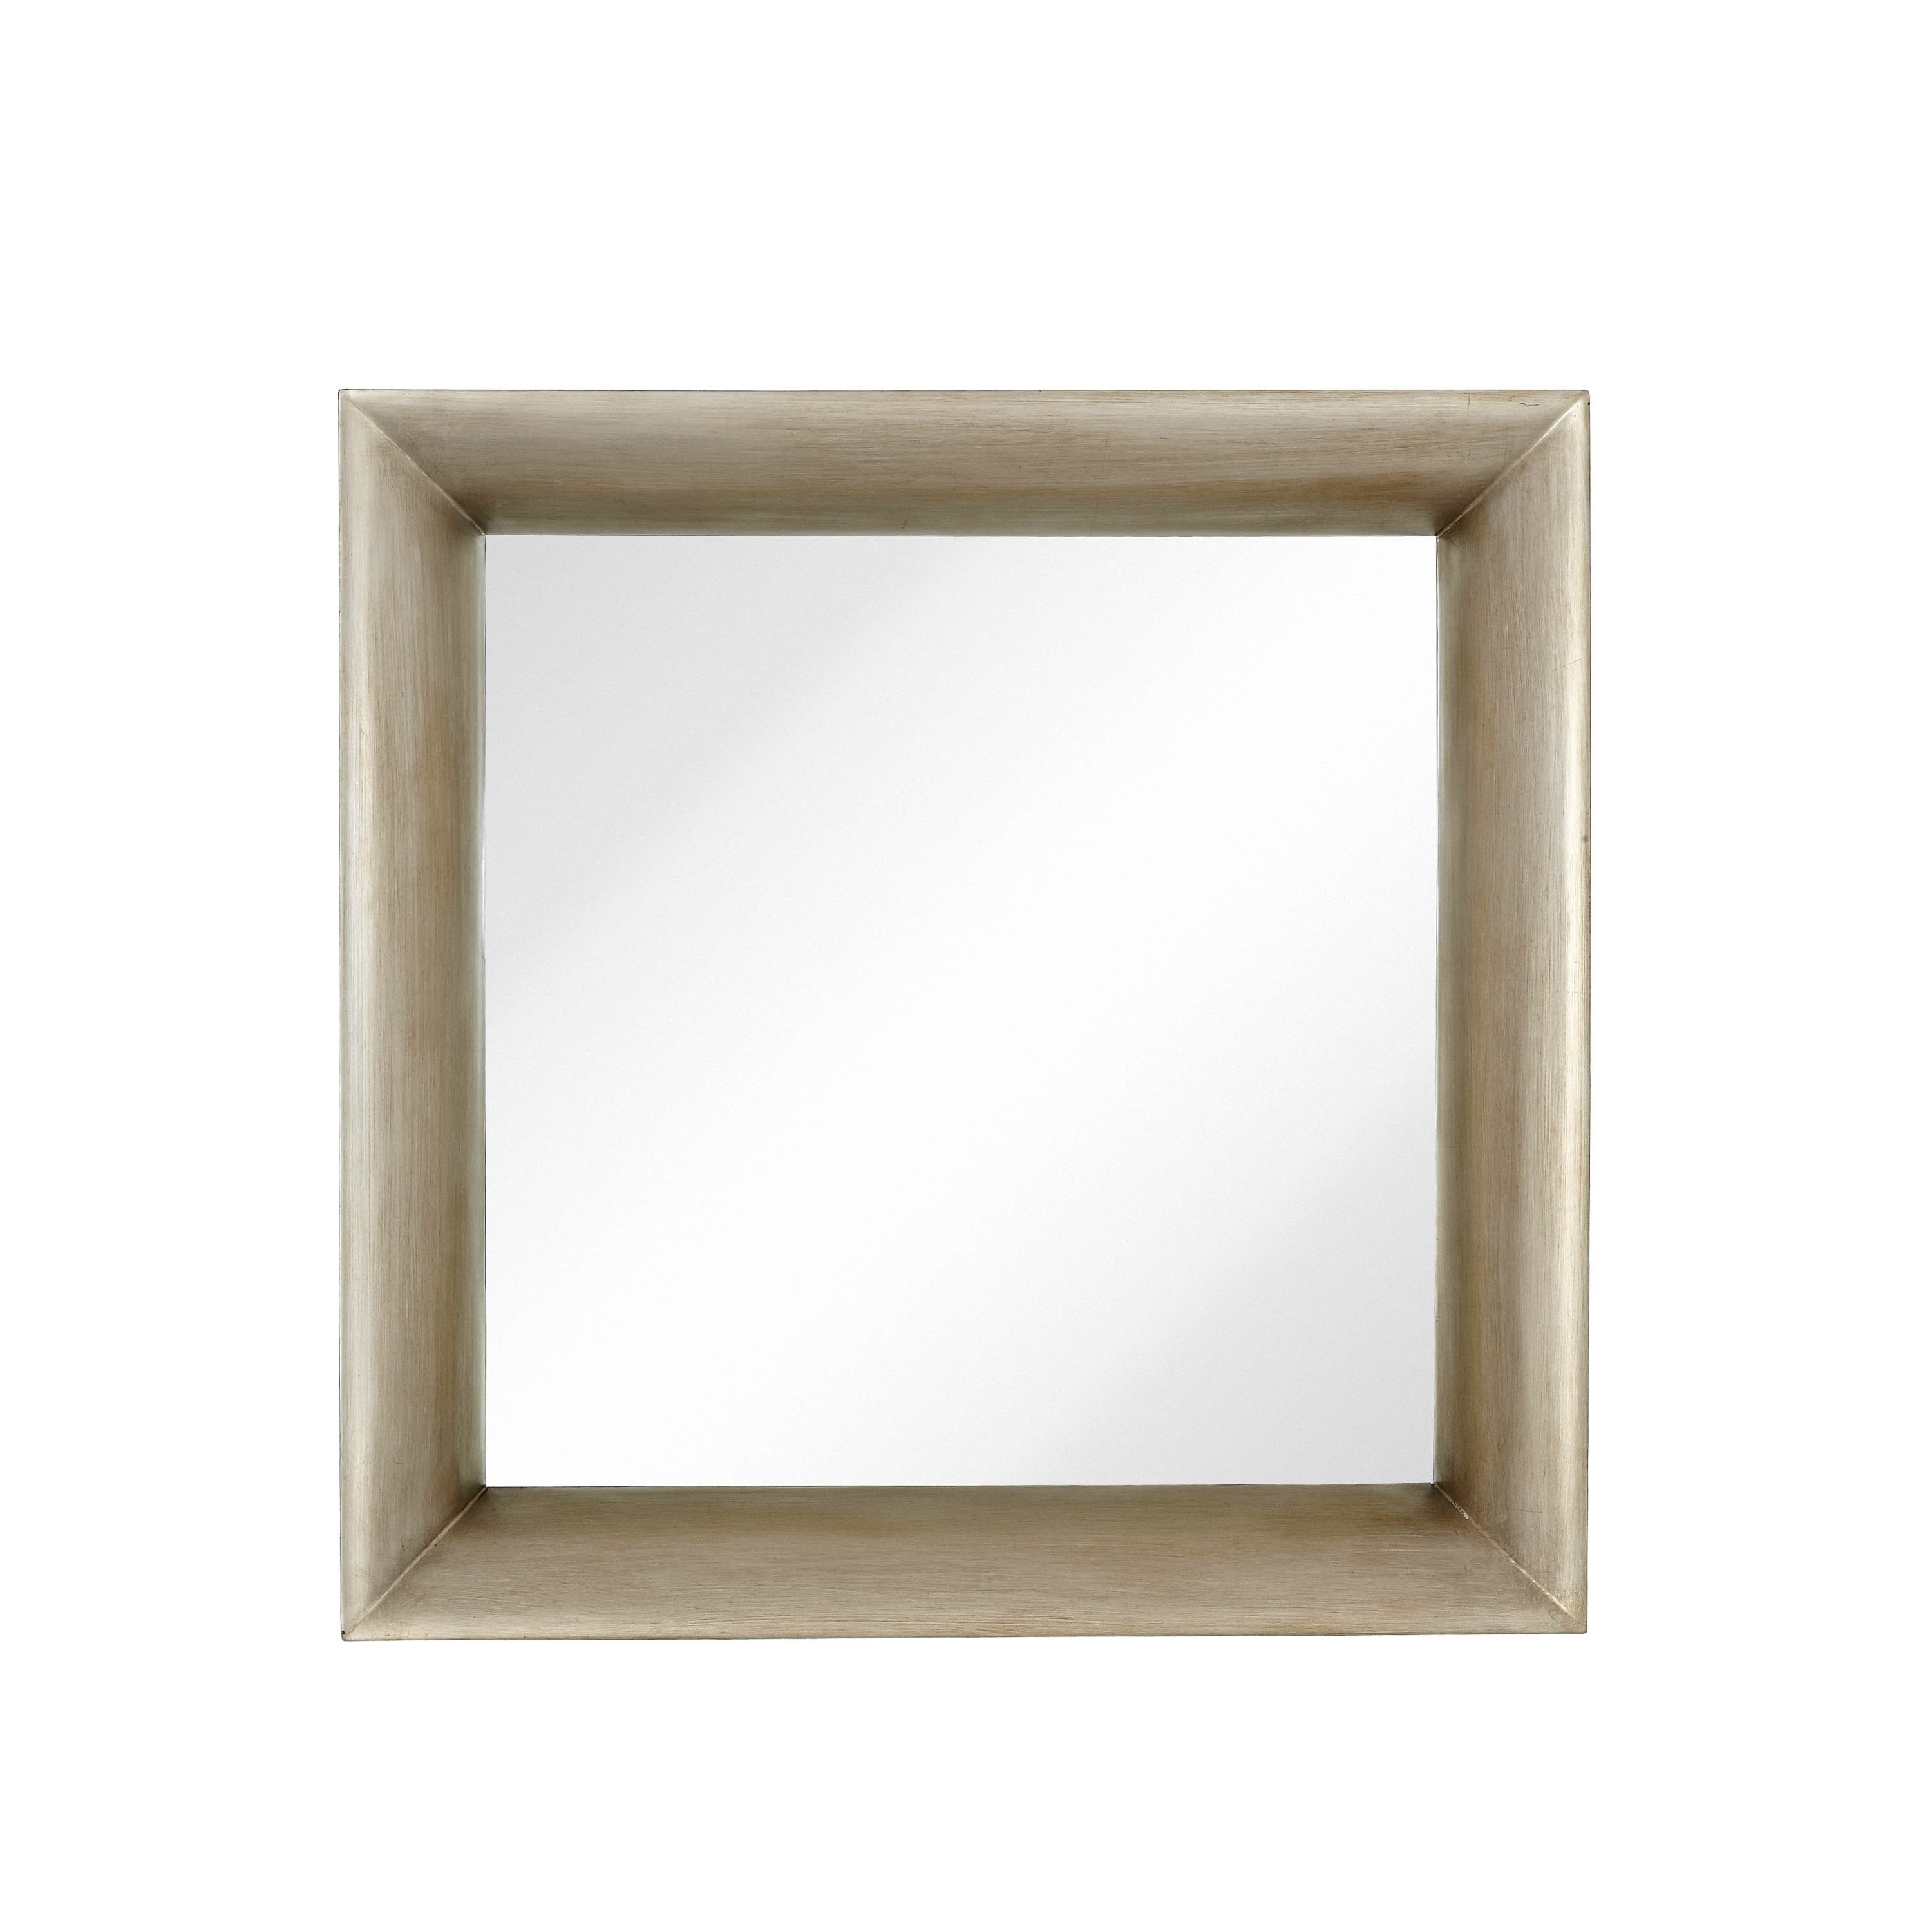 cffab81c2011 Shop Majestic Modernist Mirror with Dimensional Antique Silver Leaf Frame -  Free Shipping Today - Overstock - 16342545